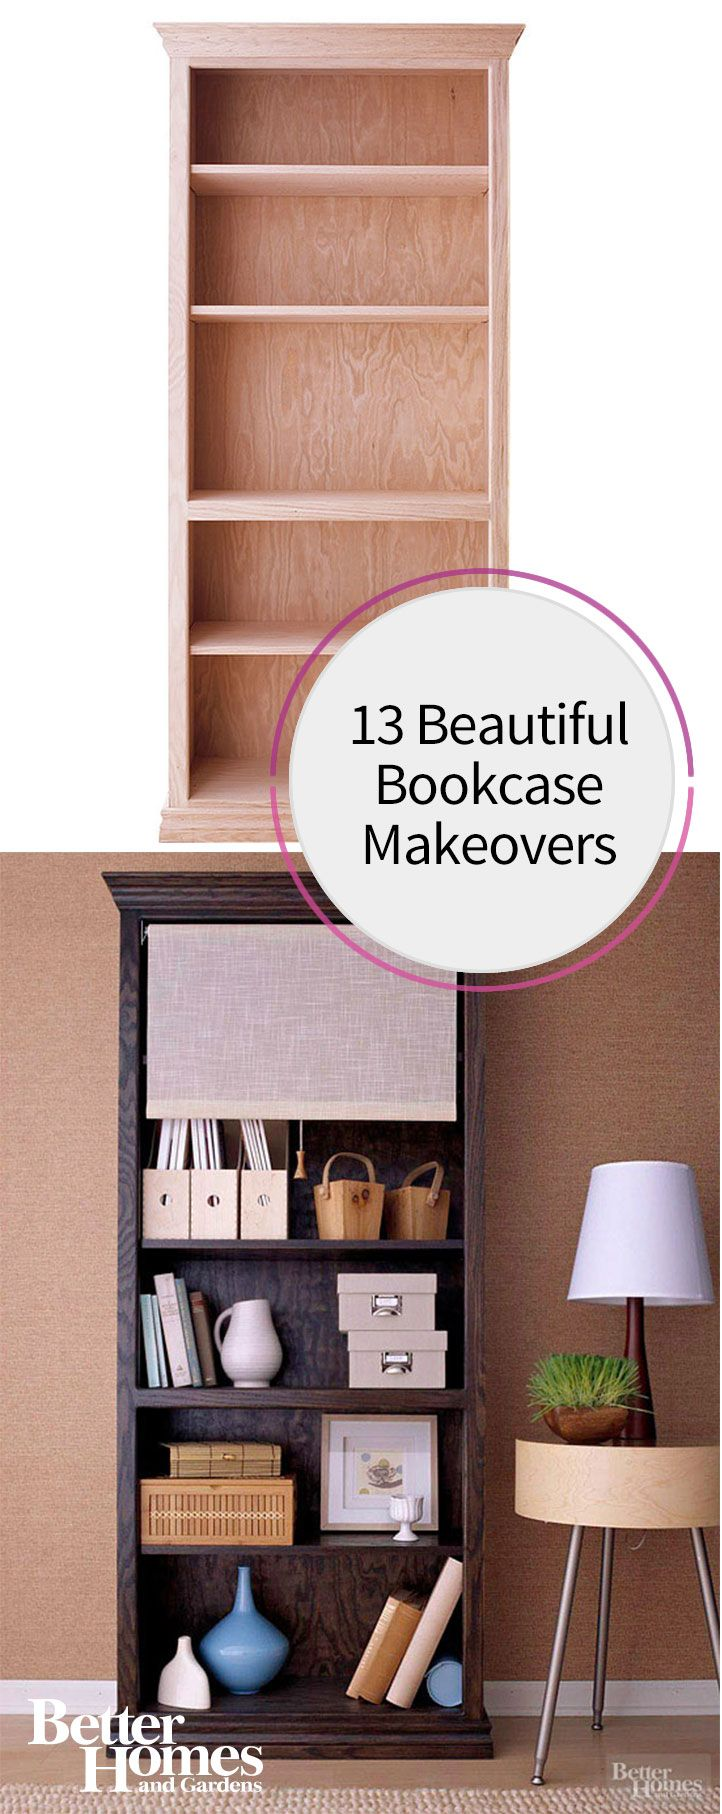 make your bookcase better than ever these amazing inspiration ideas will make you want to